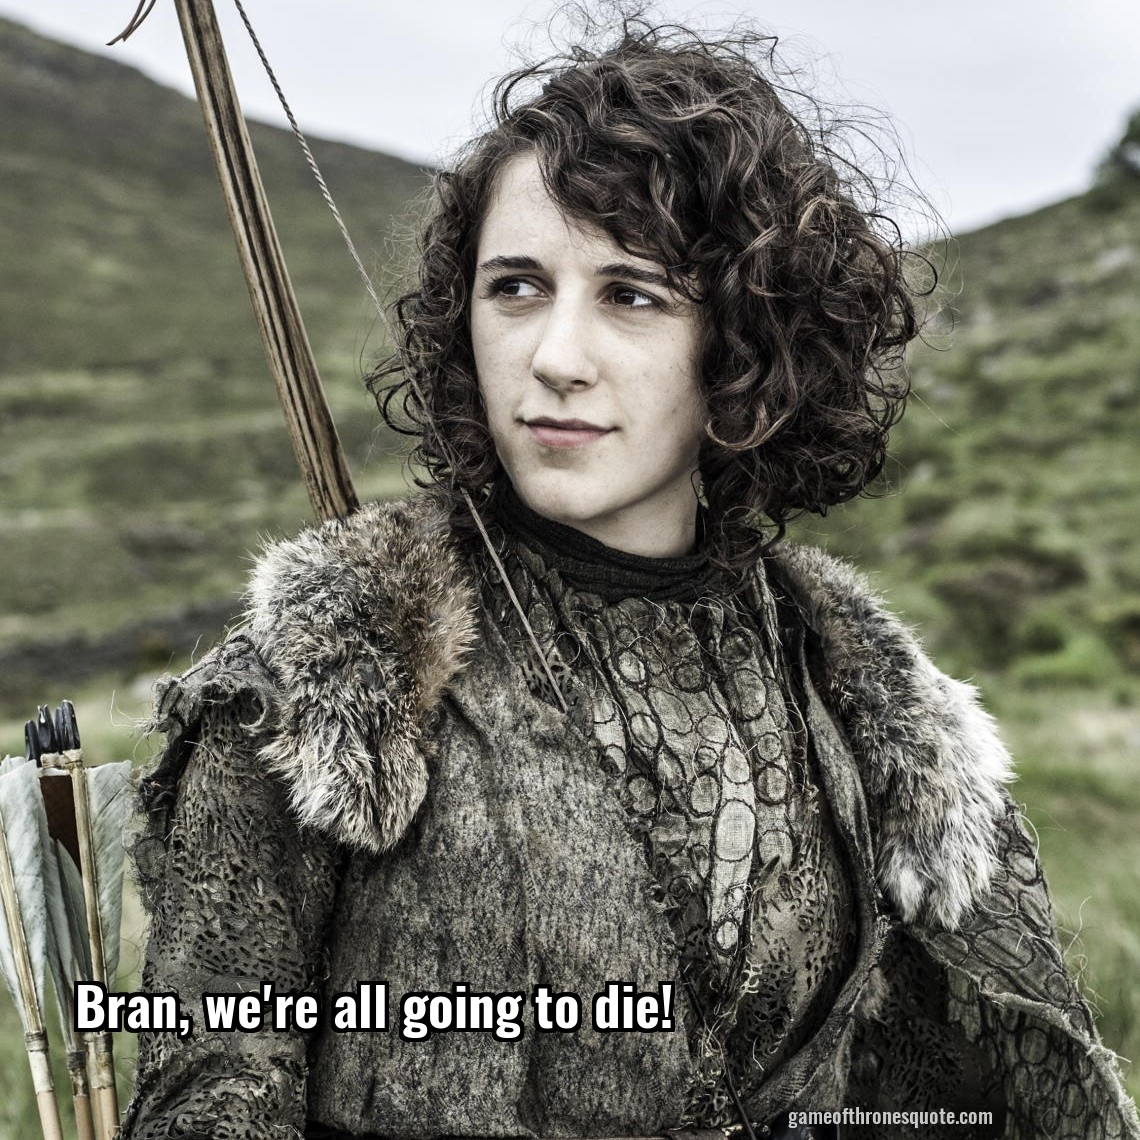 Bran, we're all going to die!